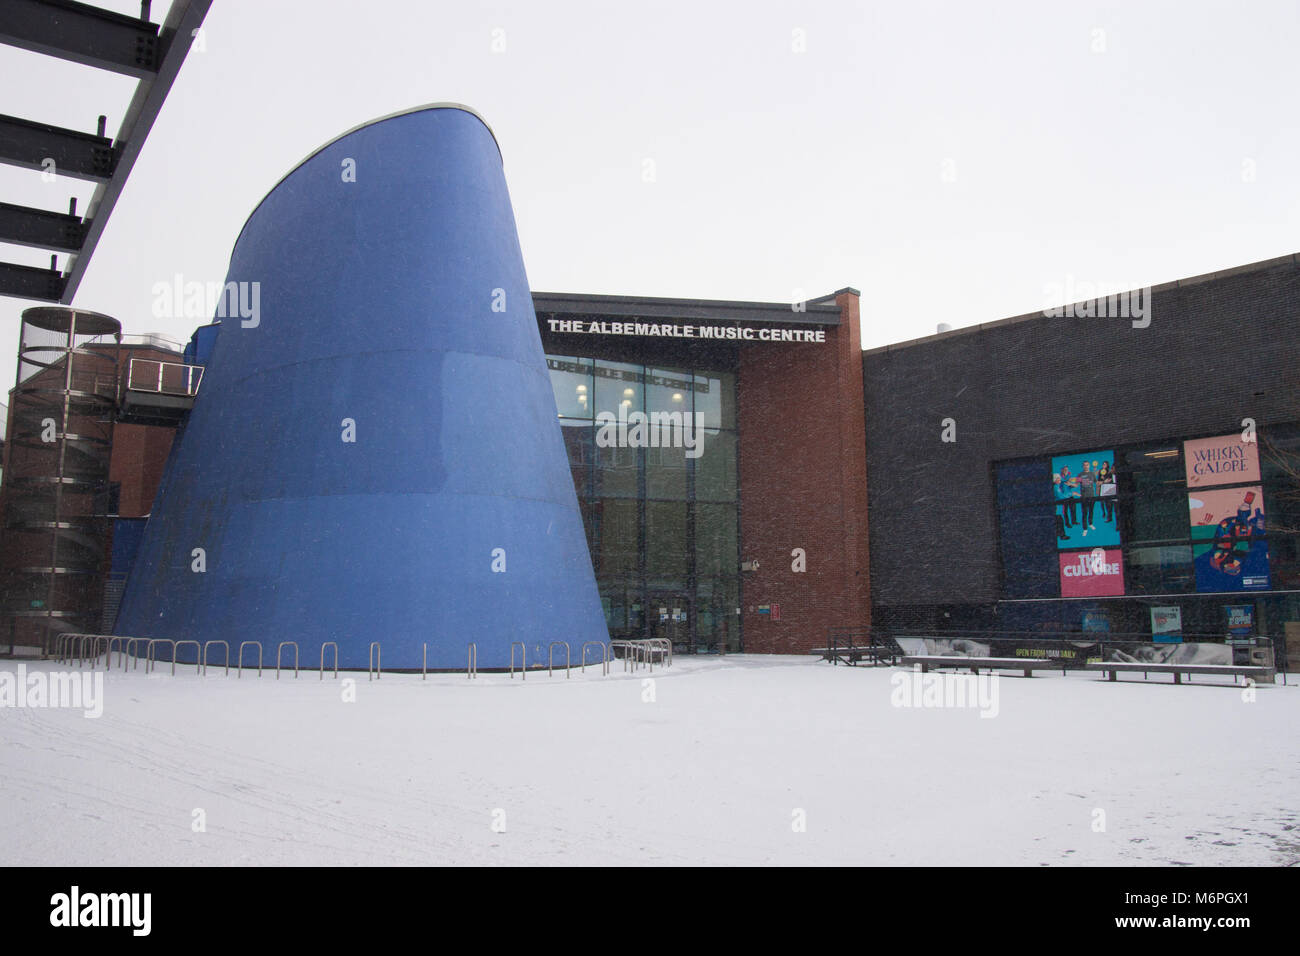 Snowy conditions at Albermarle Music Centre Hull East Yorkshire 28th February 2018 - Stock Image